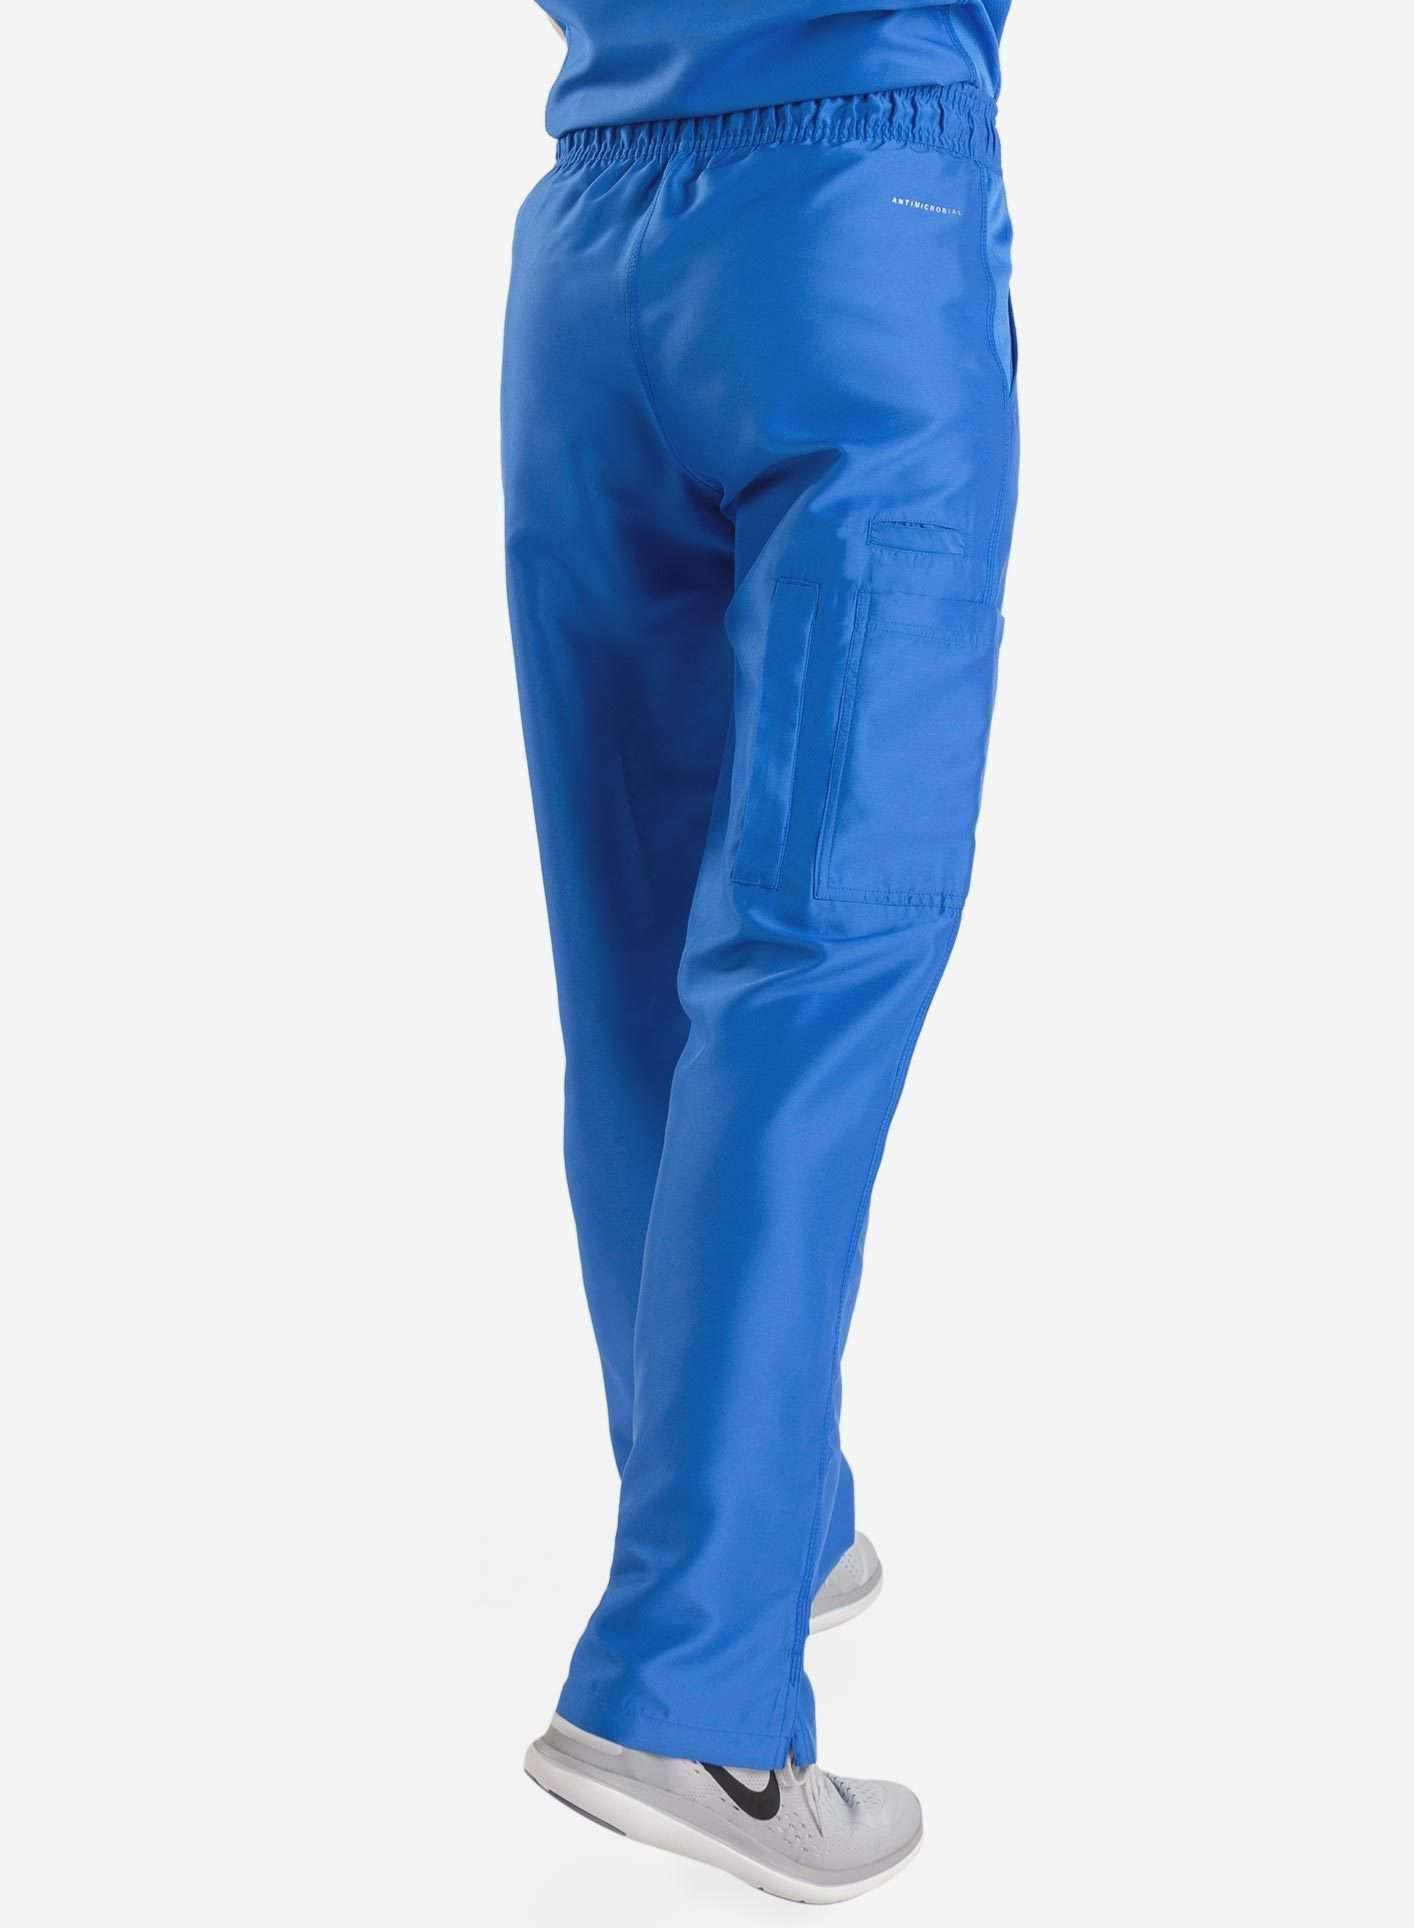 womens Elements cargo pocket straight leg scrub pants royal blue back